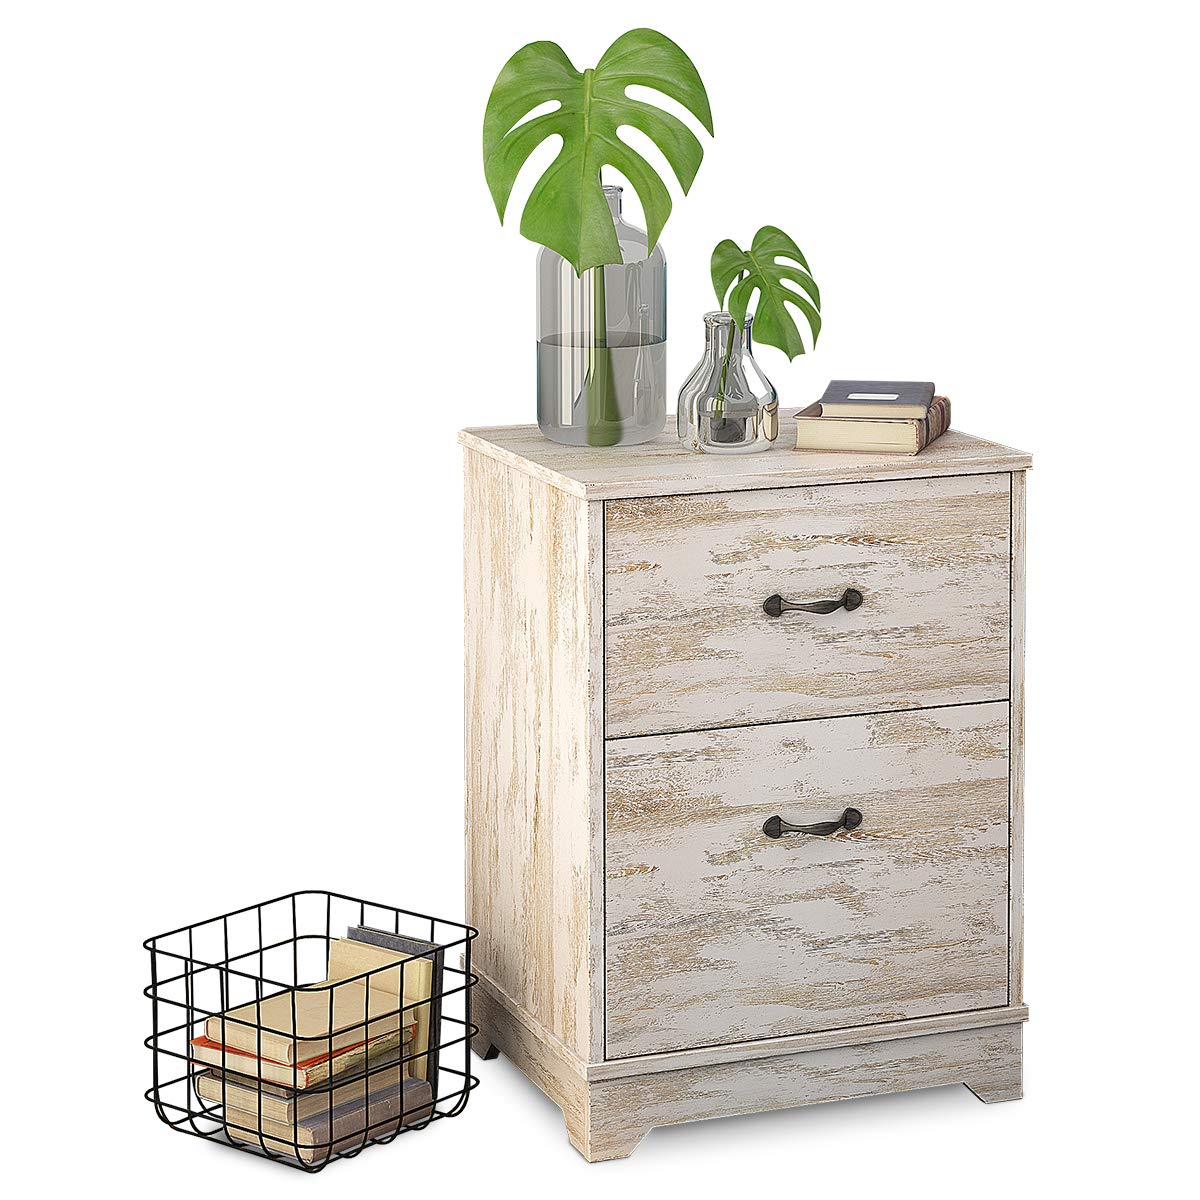 W-LIVE 2-Drawer Nightstand, Wood End/Accent Table,White Oak